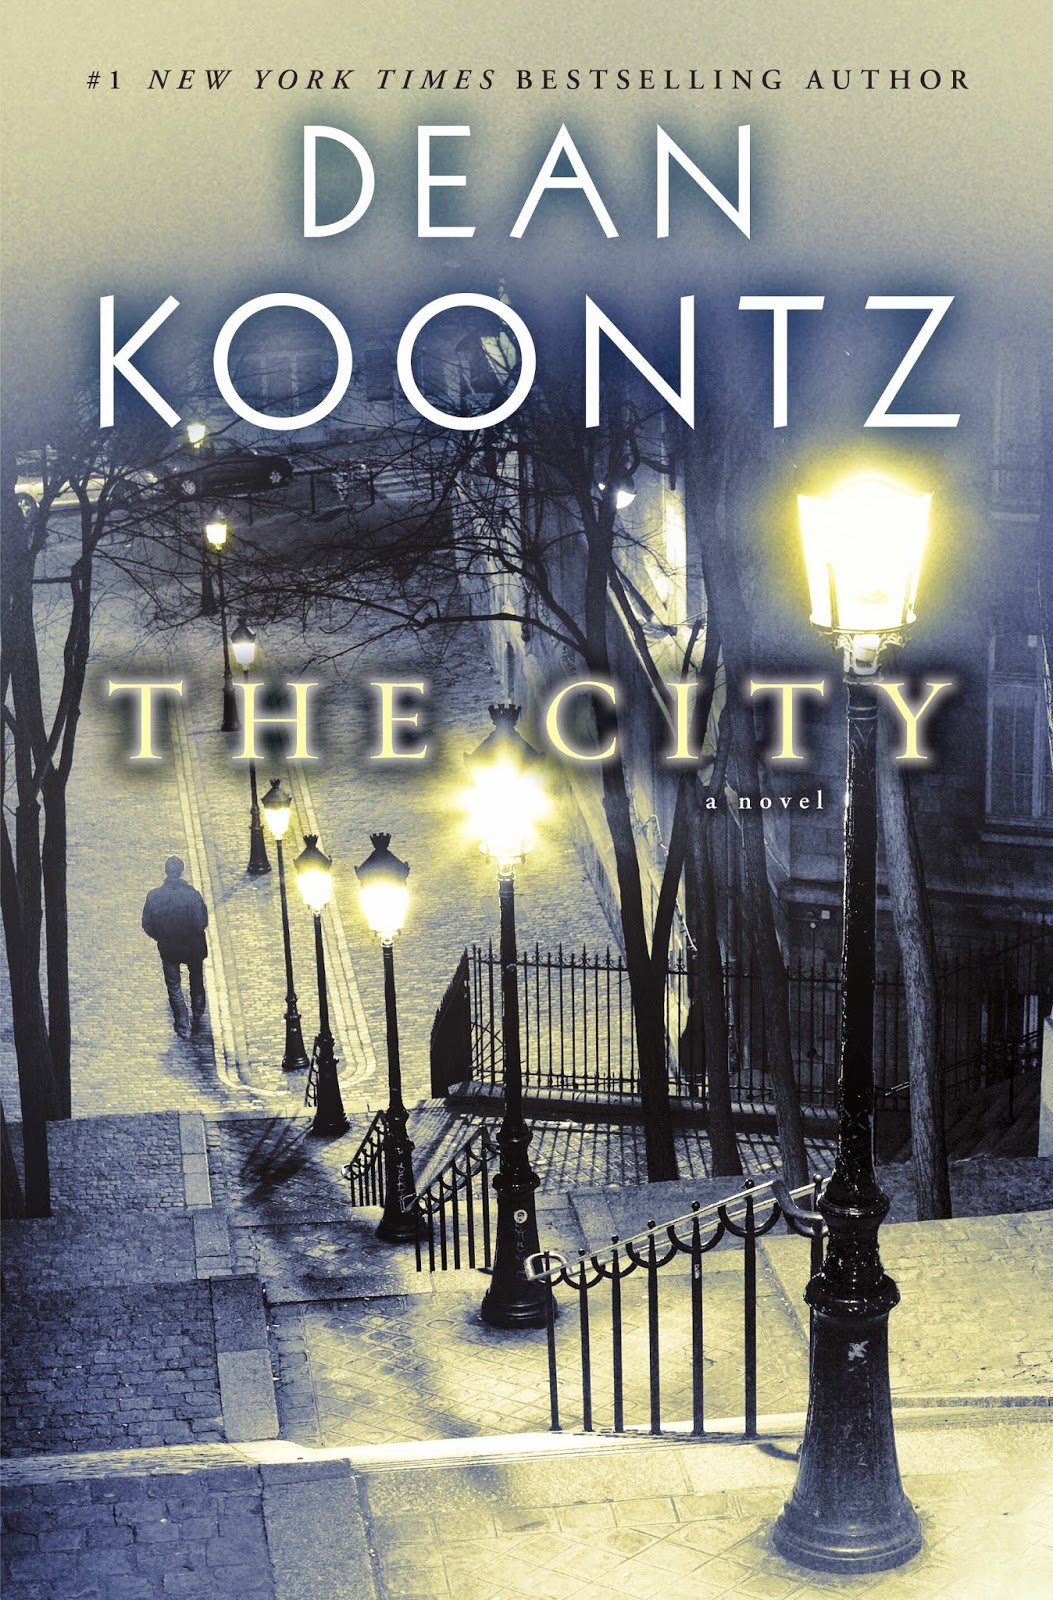 The City: /A Novel {Dean Koontz} | #giveaway #freebooks #bookclub #randomhouse #sponsored